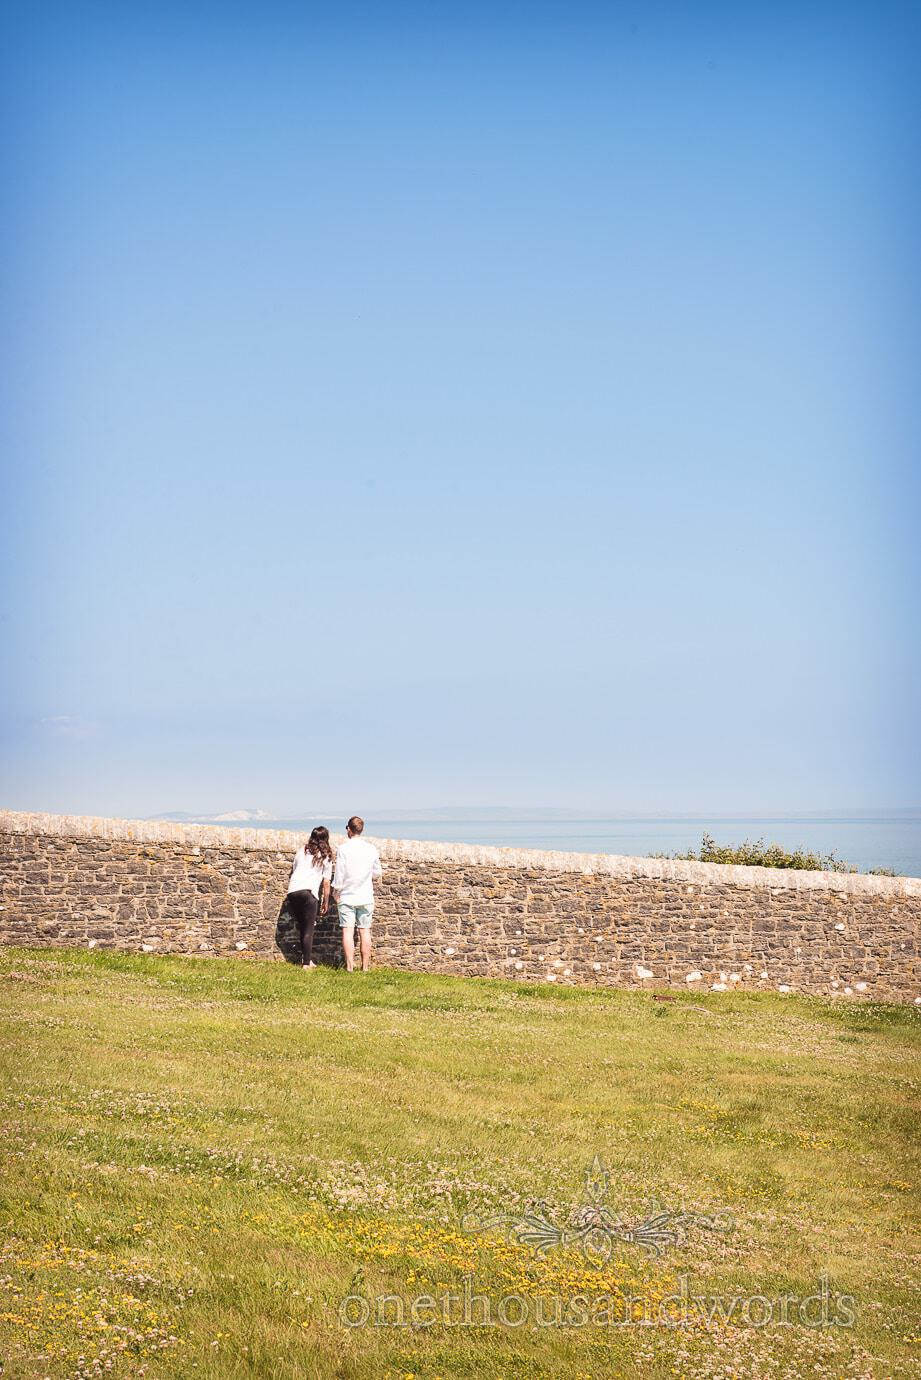 Swanage Wedding Photographers capture wedding guests admiring sea views at Durlston Lighthouse wedding